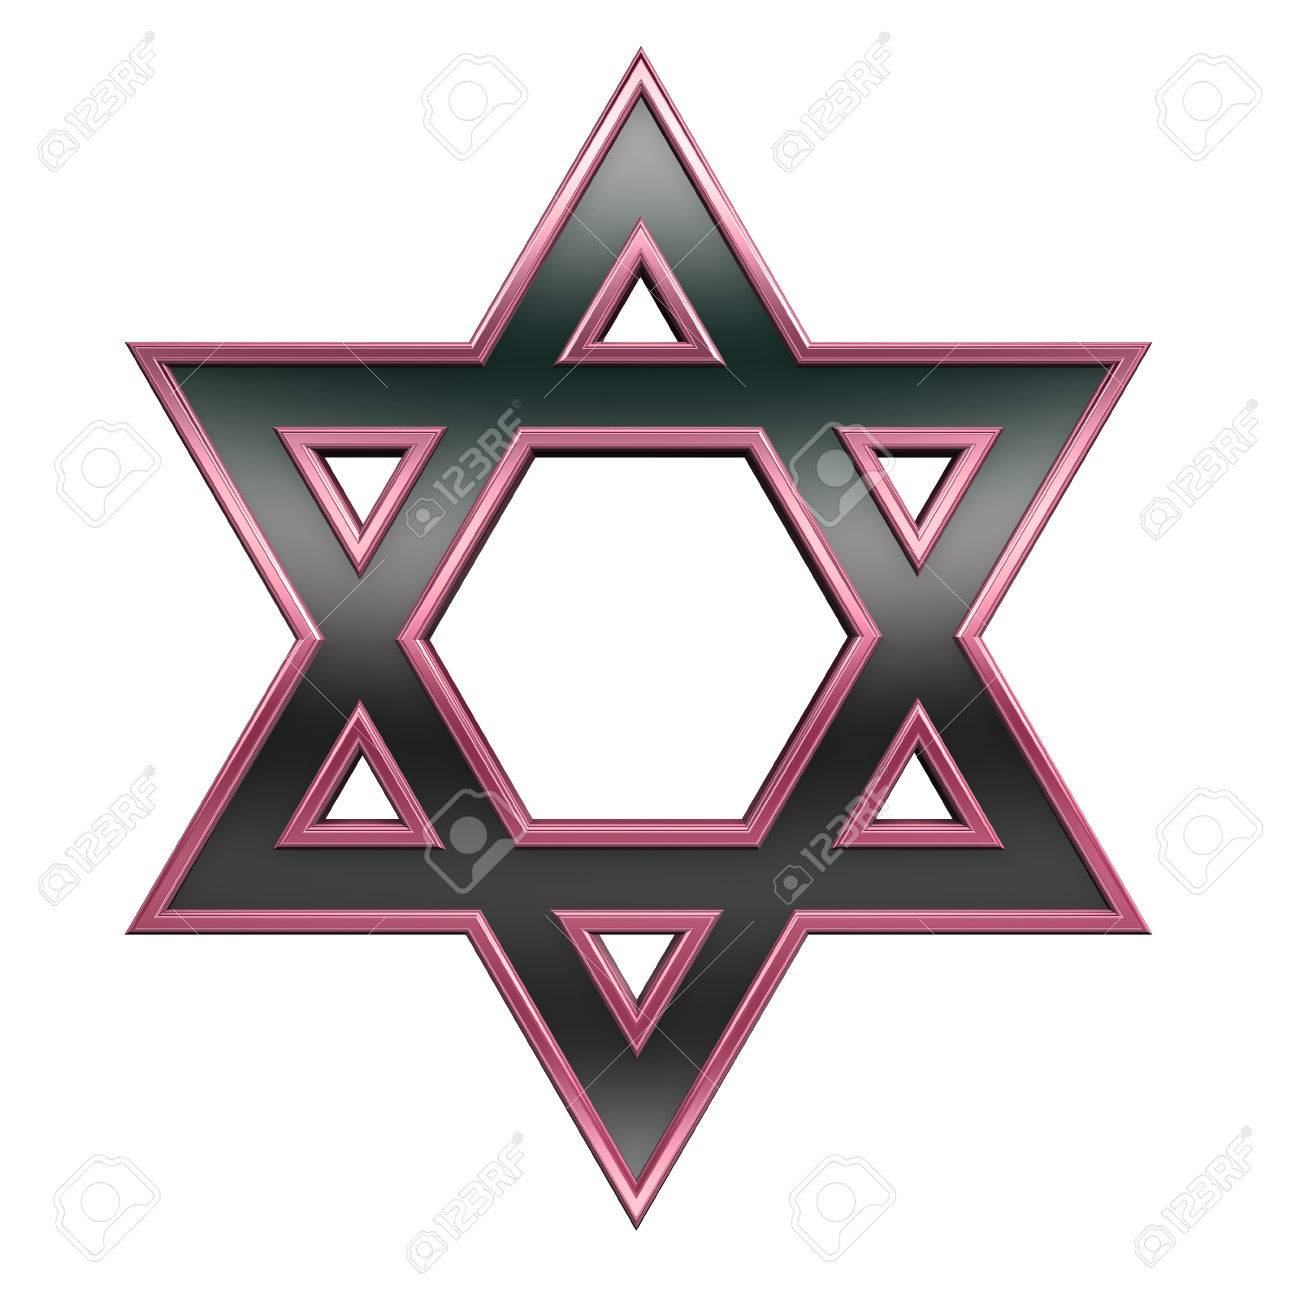 Judaism Sacred Symbol Images Meaning Of Text Symbols